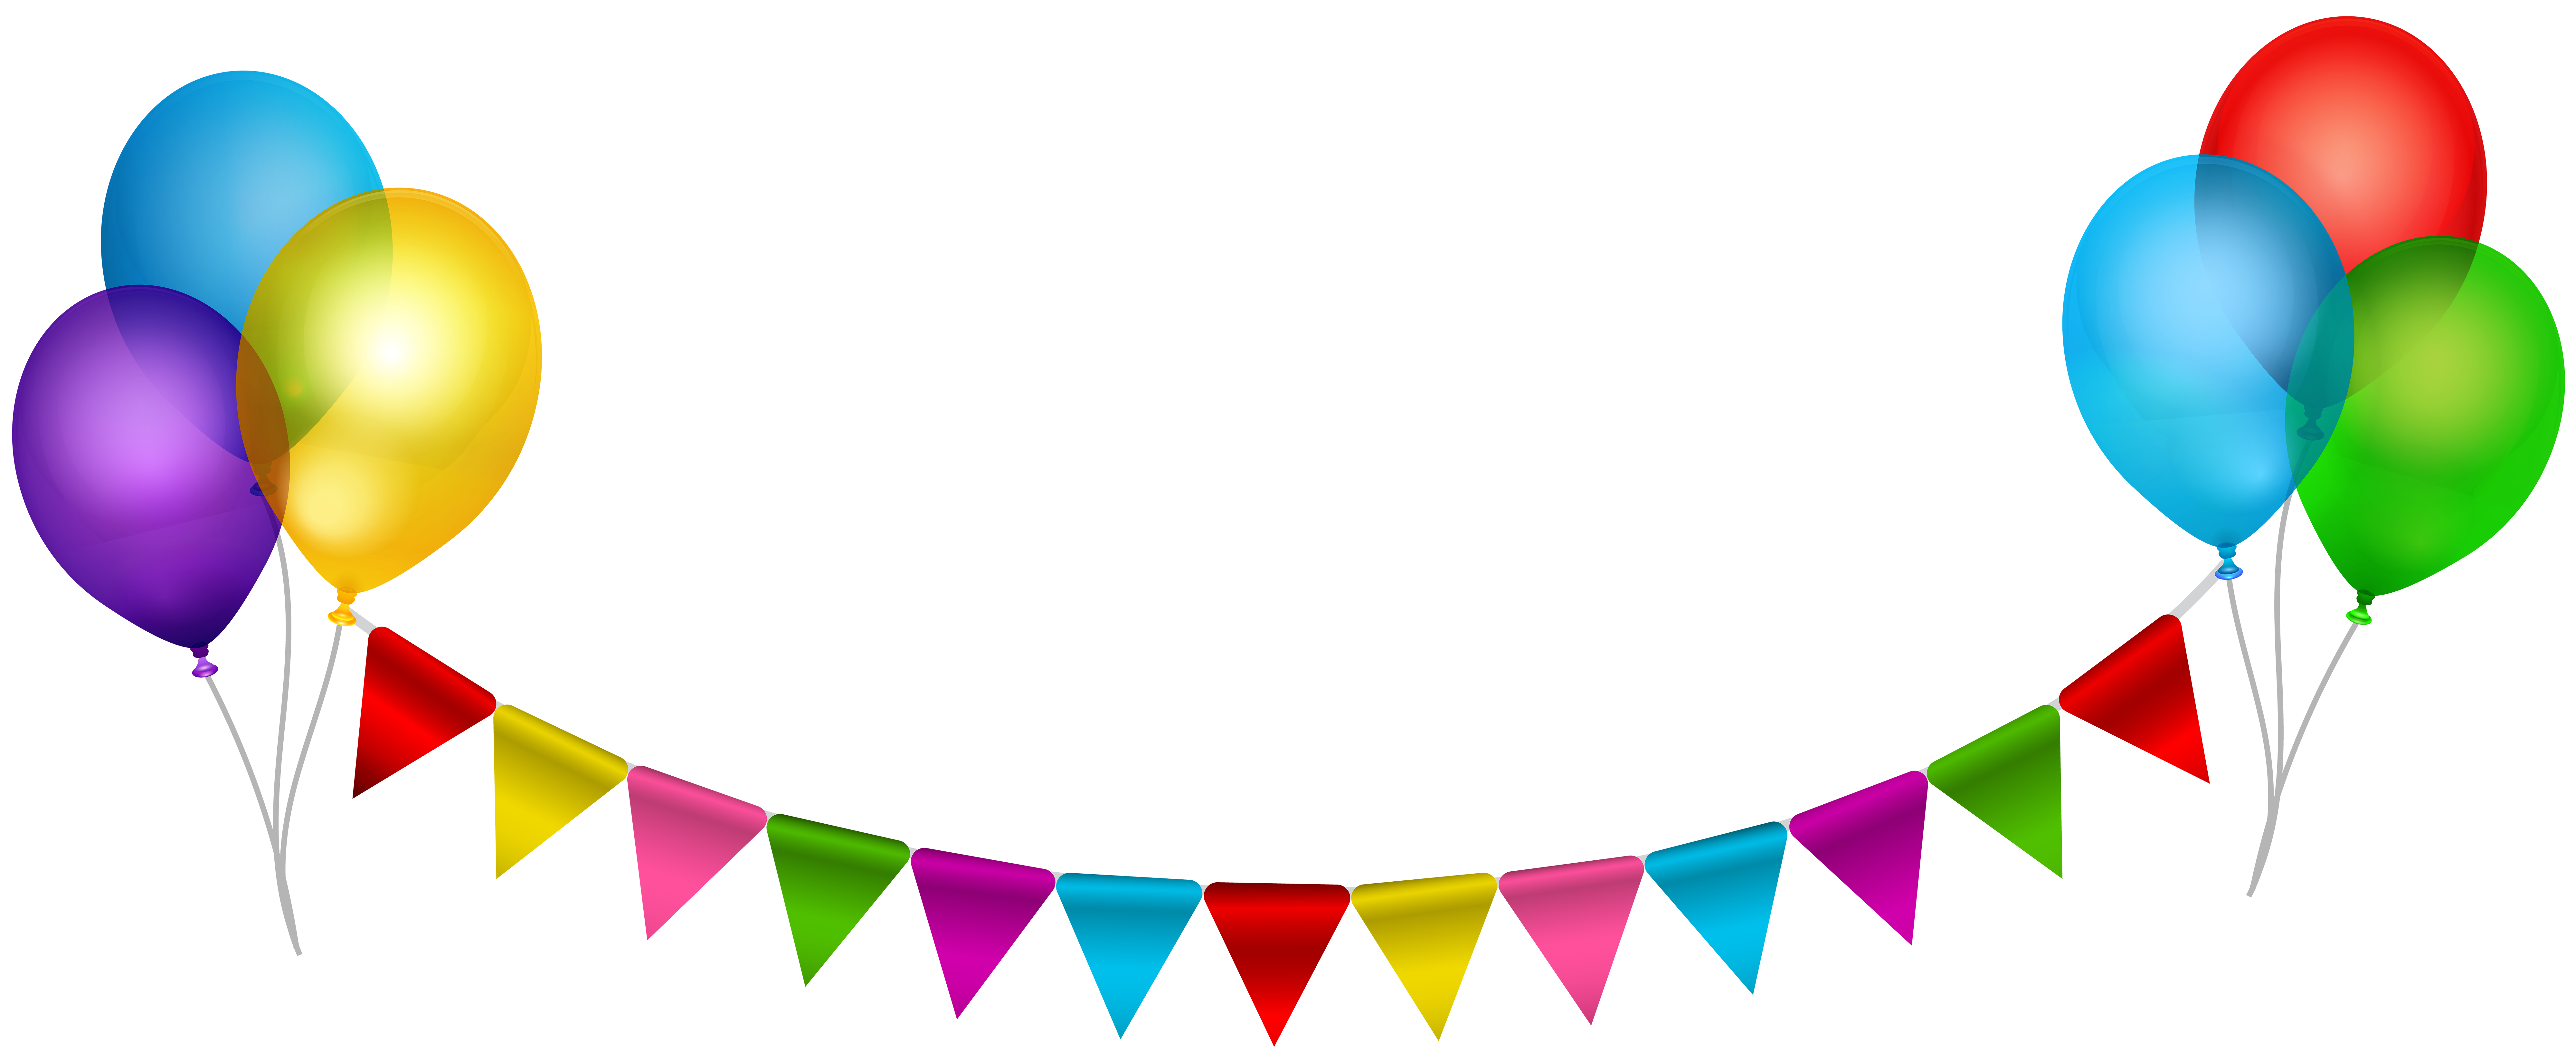 jpg transparent Streamers transparent background. Party streamer with balloons